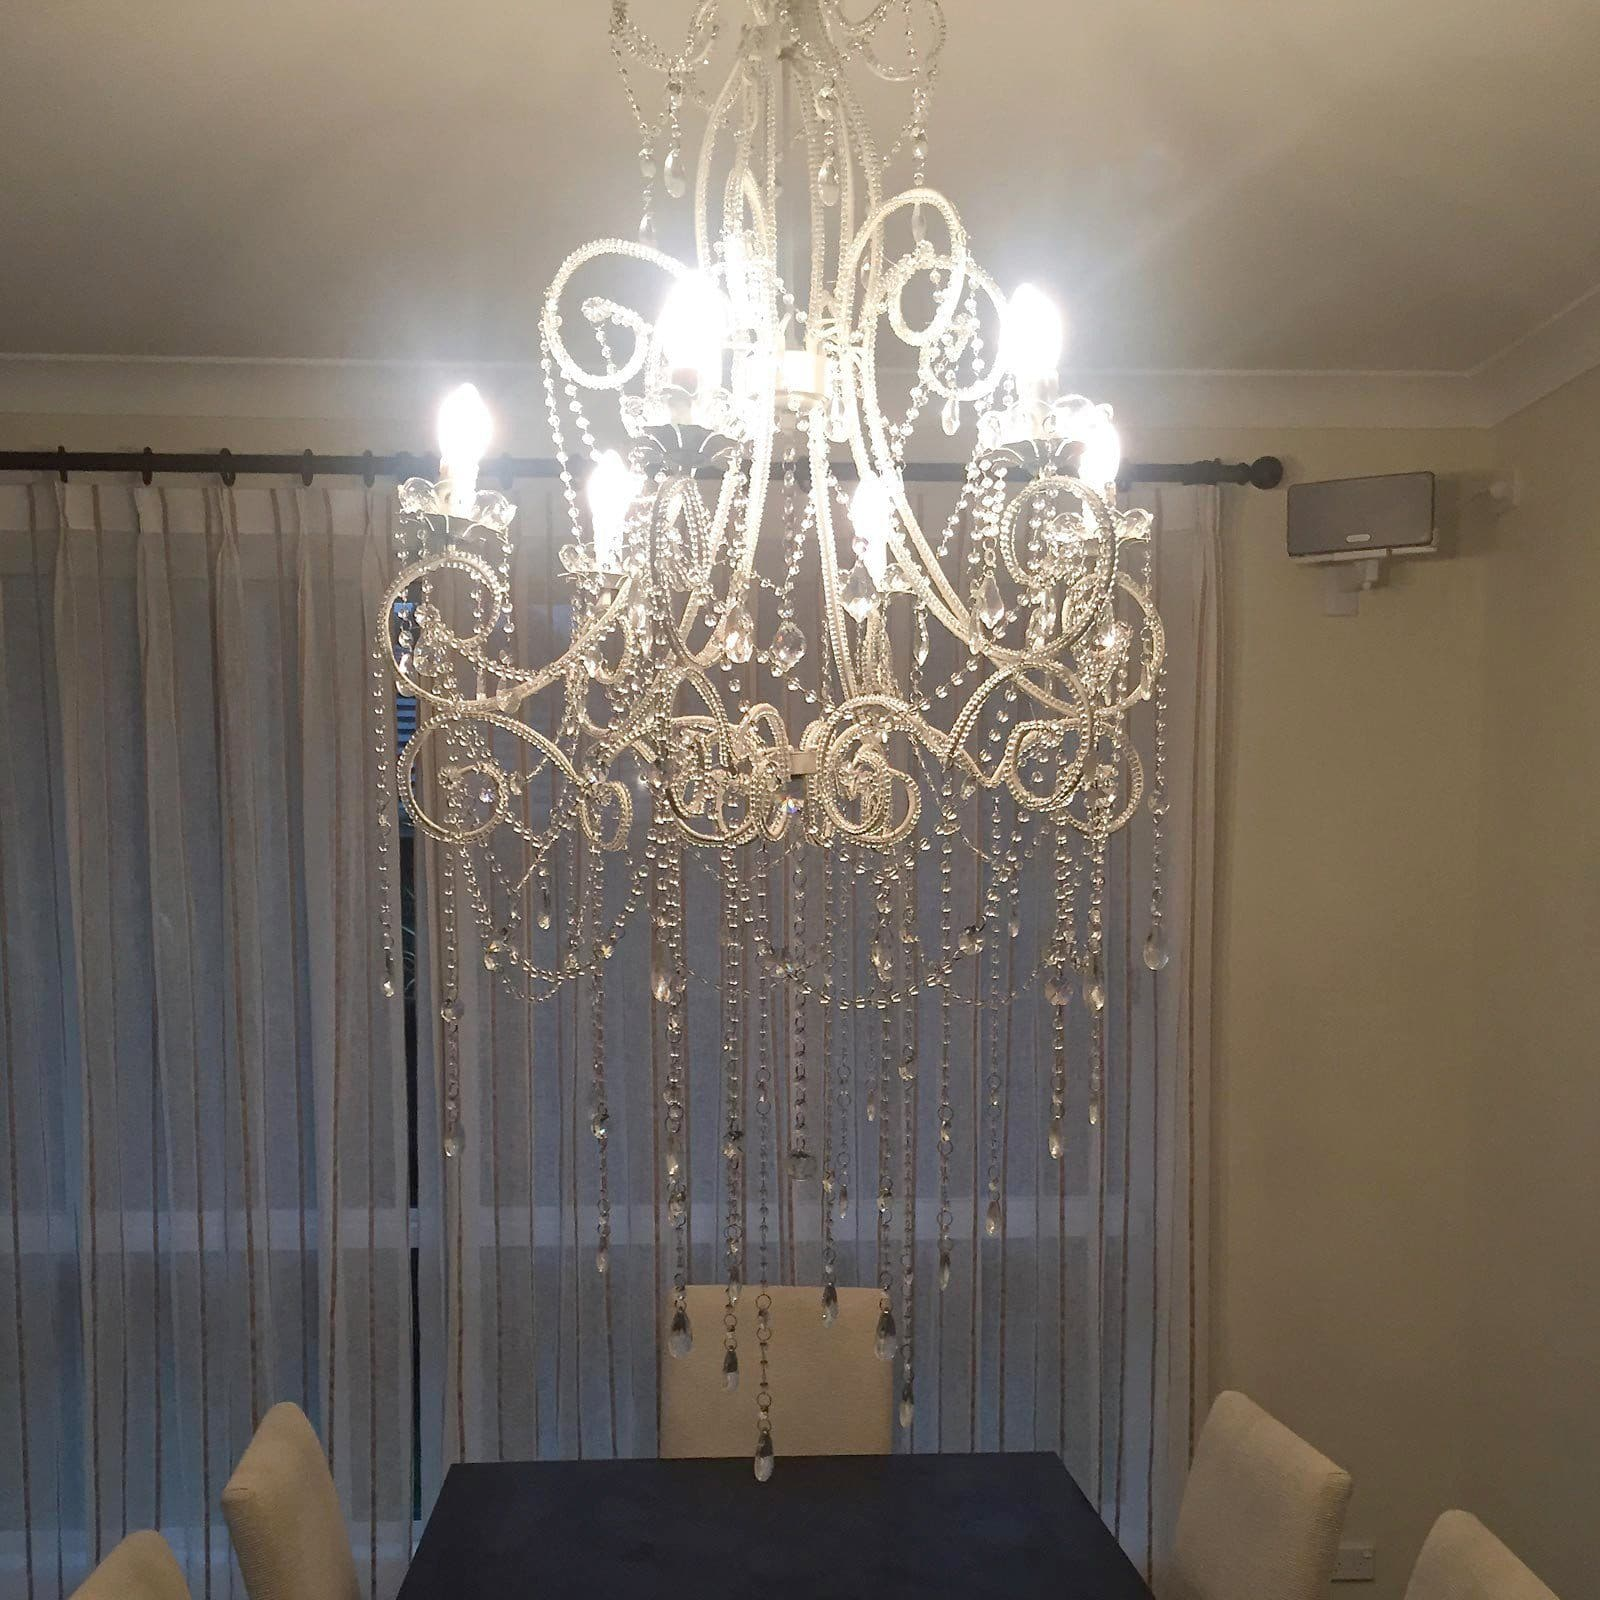 Large French Provincial 6 Light Anastasia Chandelier in a dining room